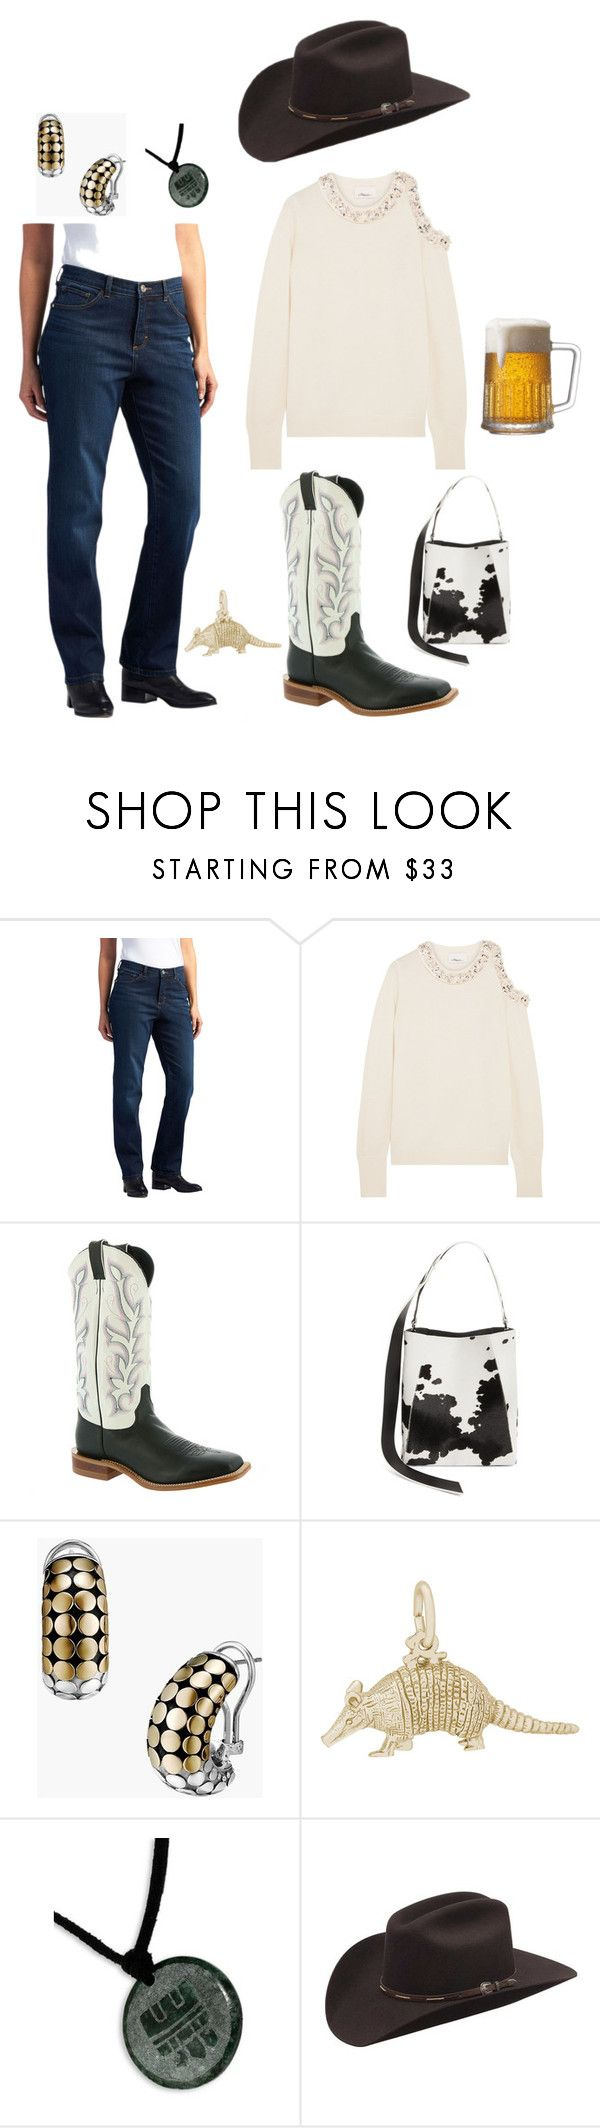 """Untitled #3558"" by moestesoh ❤ liked on Polyvore featuring Lee, 3.1 Phillip Lim, Justin Boots, Calvin Klein 205W39NYC, John Hardy, Rembrandt Charms, NOVICA and Silverado"